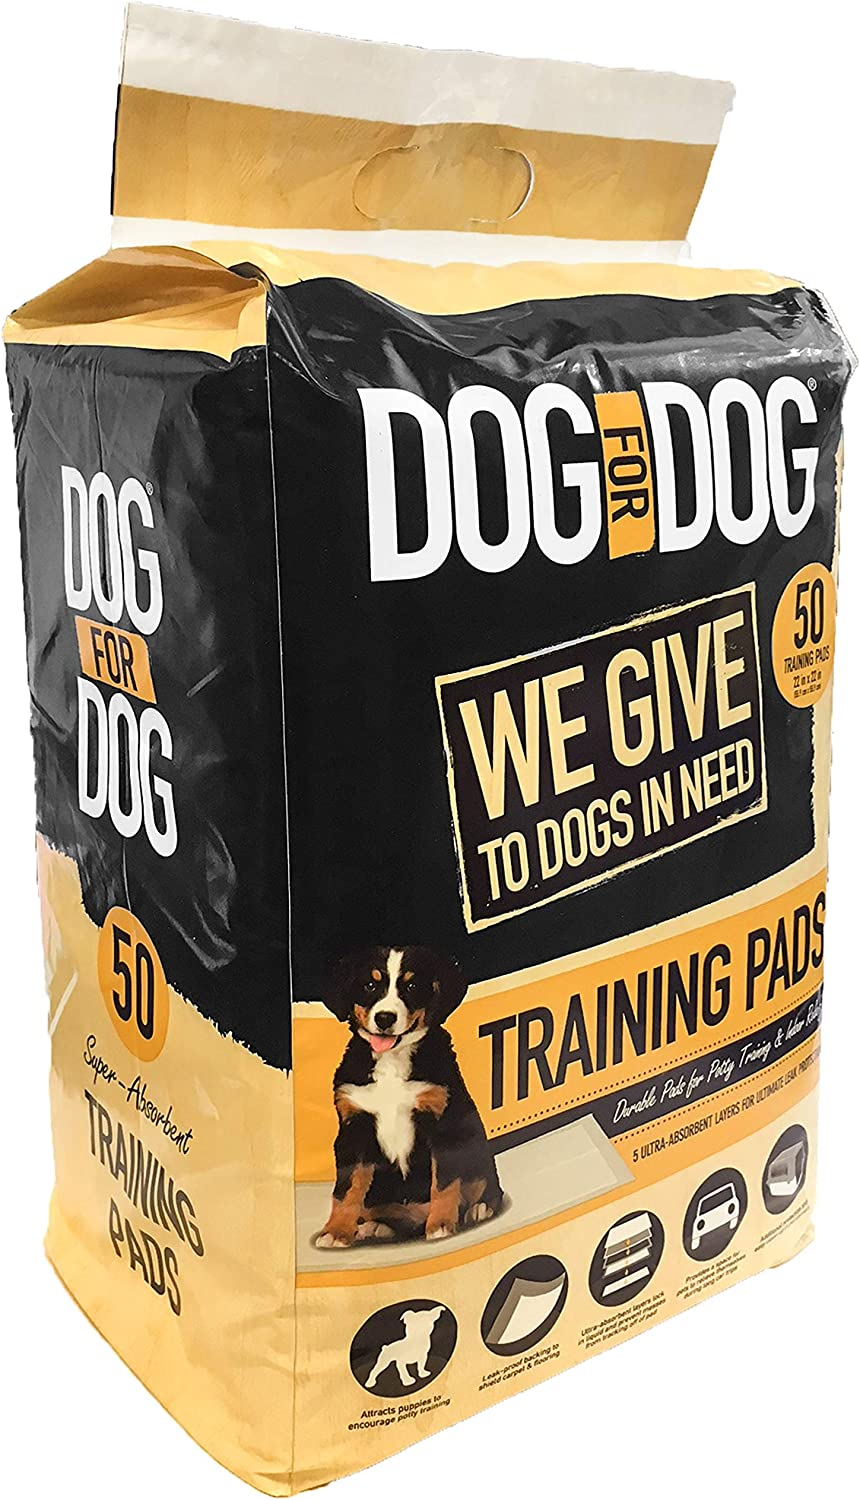 DOG for DOG Puppy Pads - Instant Gel, Super Absorbent, Tear-Resistant Pee Dog Training Pads for Dogs - Pet Weewee Pads -Odor Neutralizing with Leak Protection for Puppies - 22x22 in